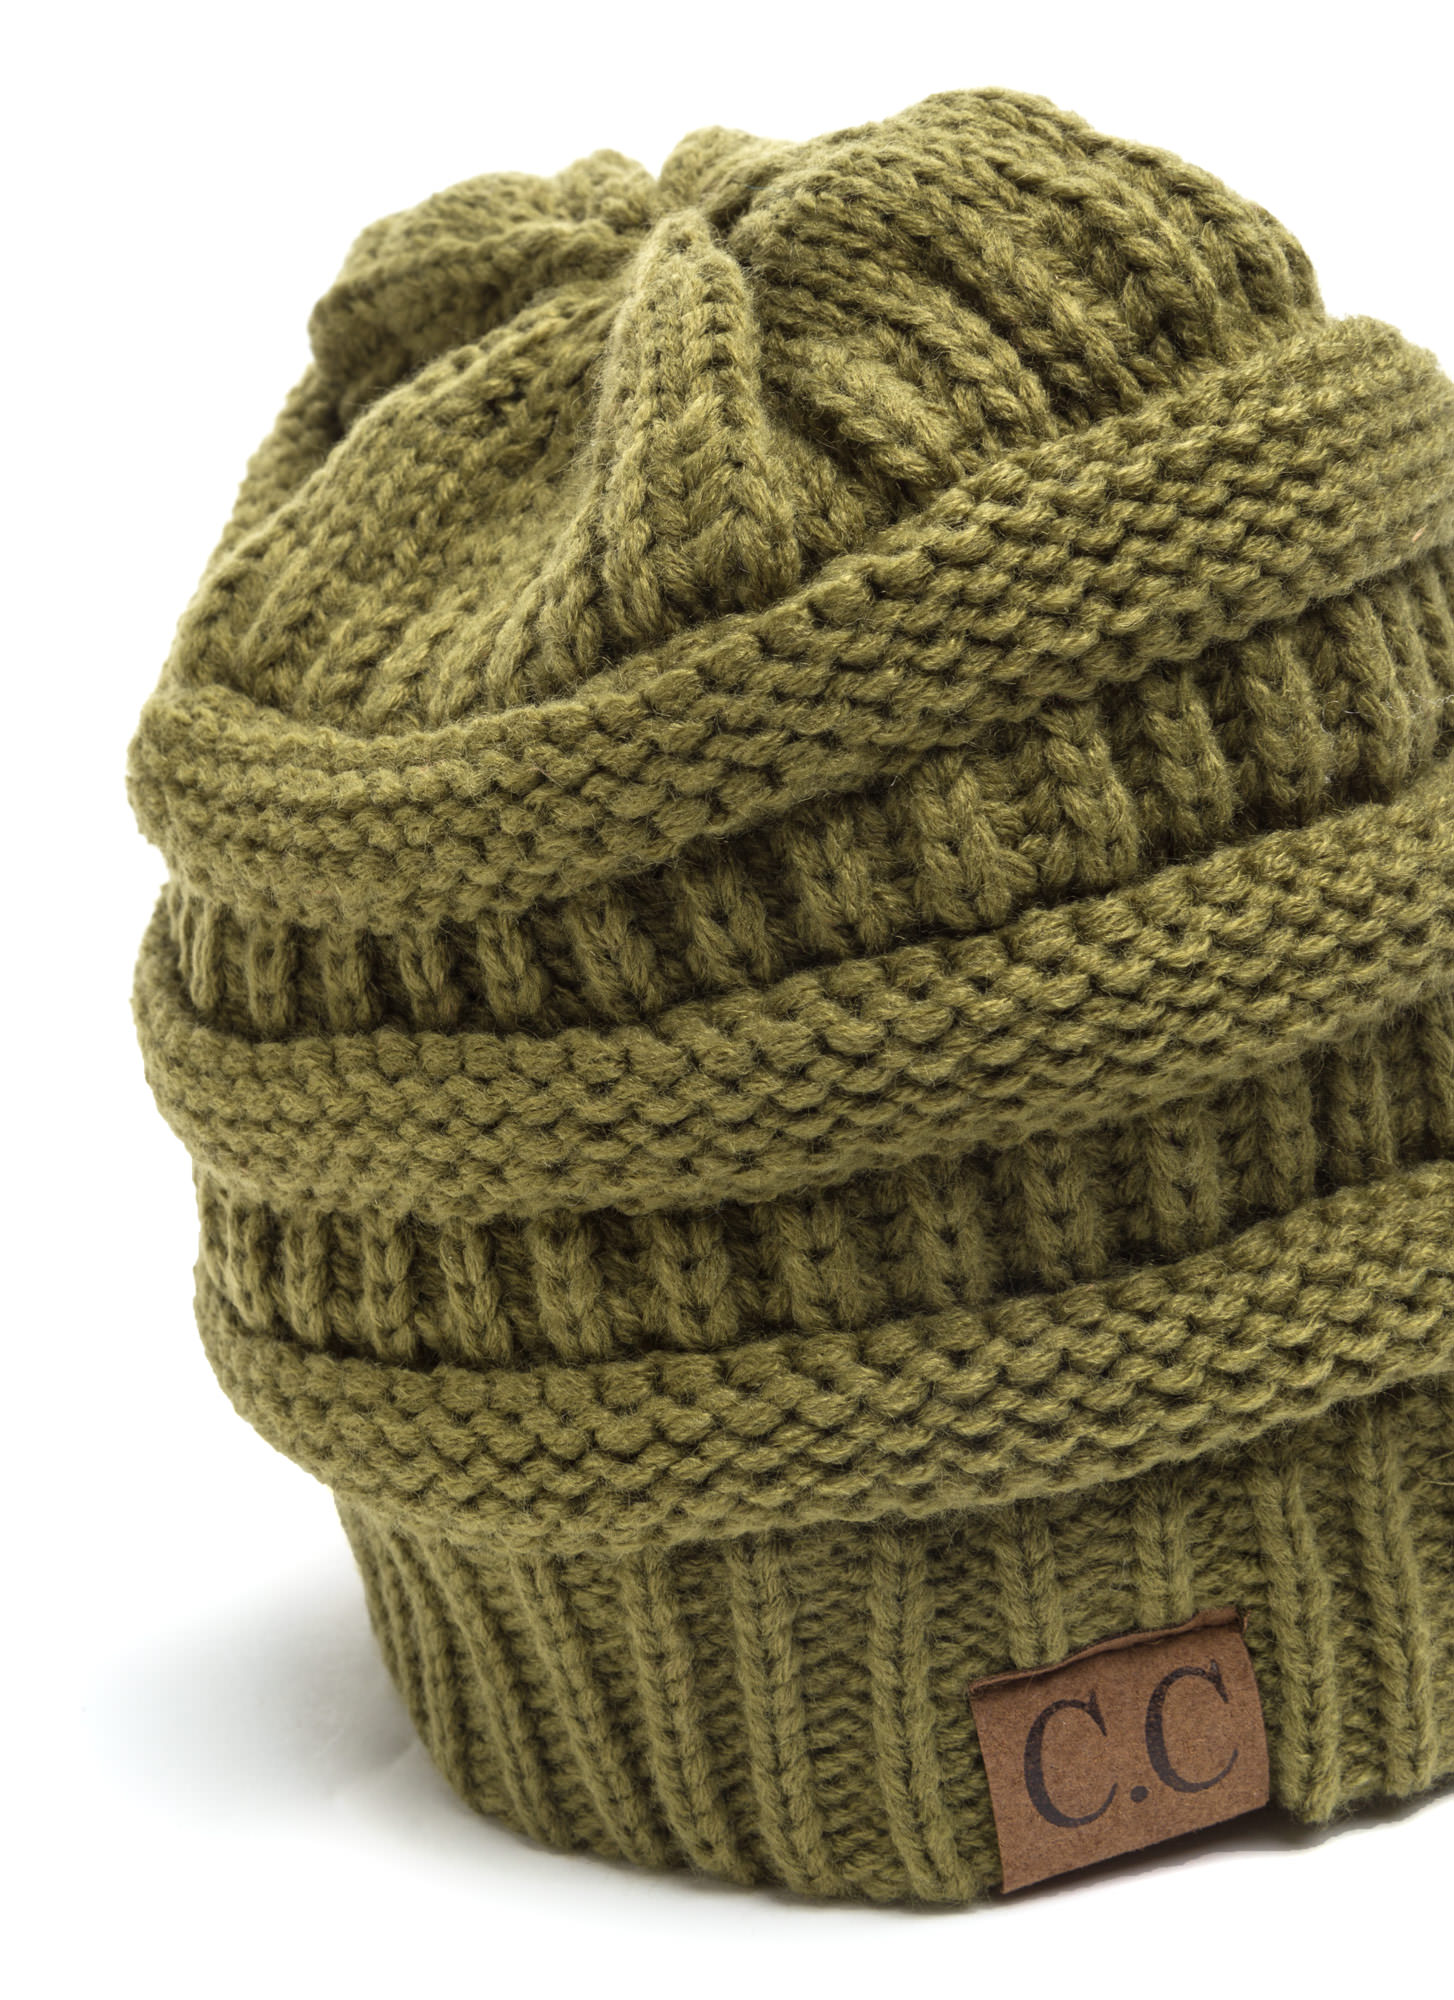 Cozy CC Cable Knit Beanie OLIVE (Final Sale)